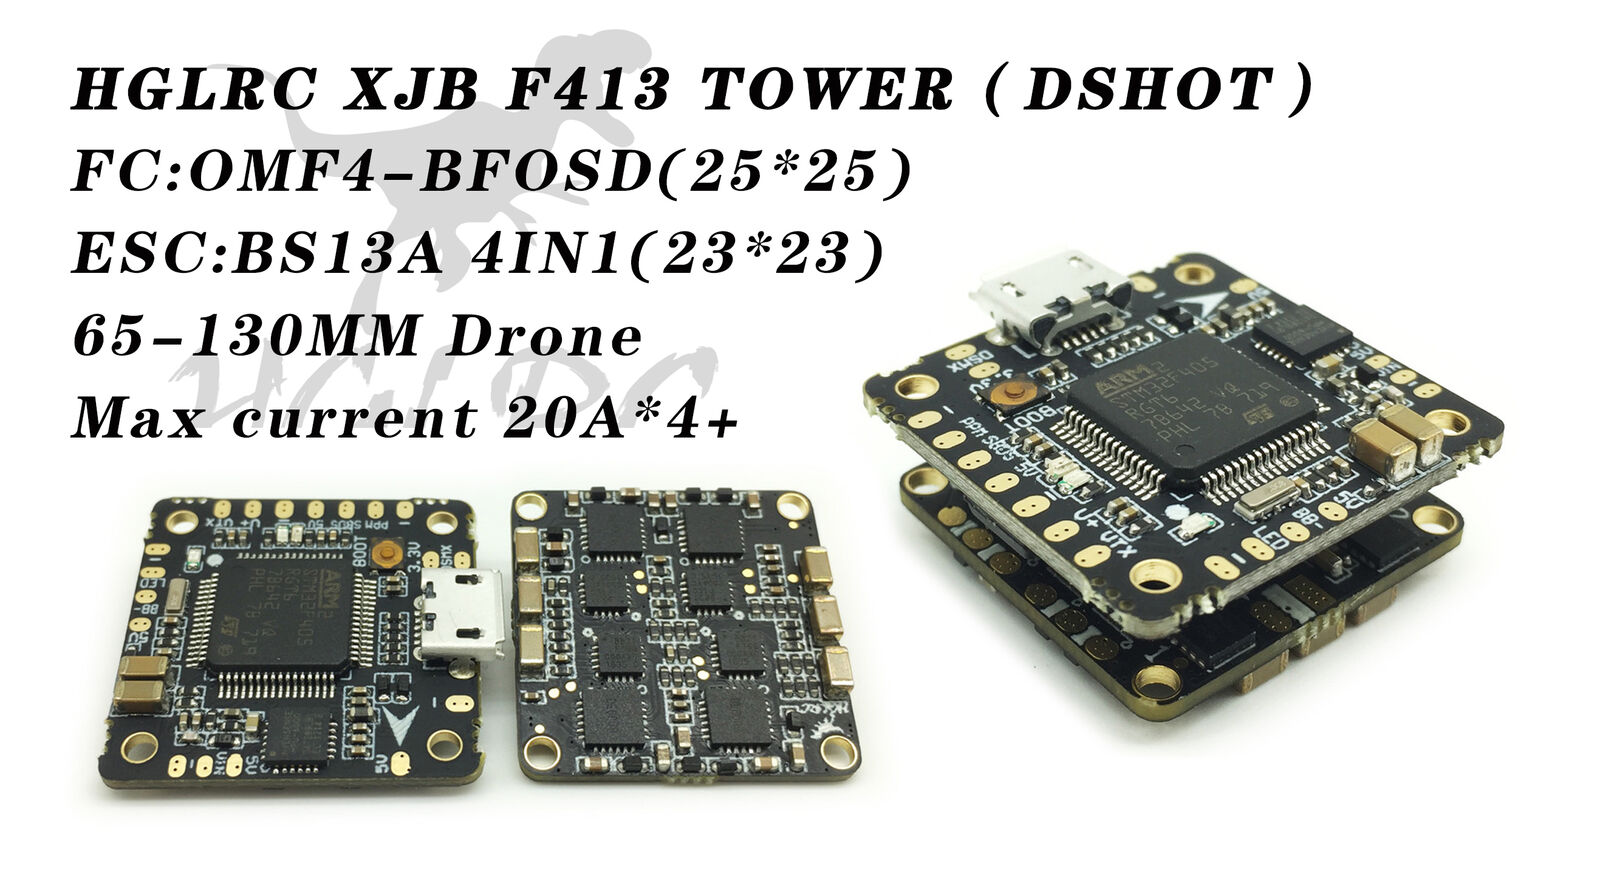 HGLRC XJB F413 DSHOT Flytower F4 Flight Control Tower with 4IN1 BS13A ESC